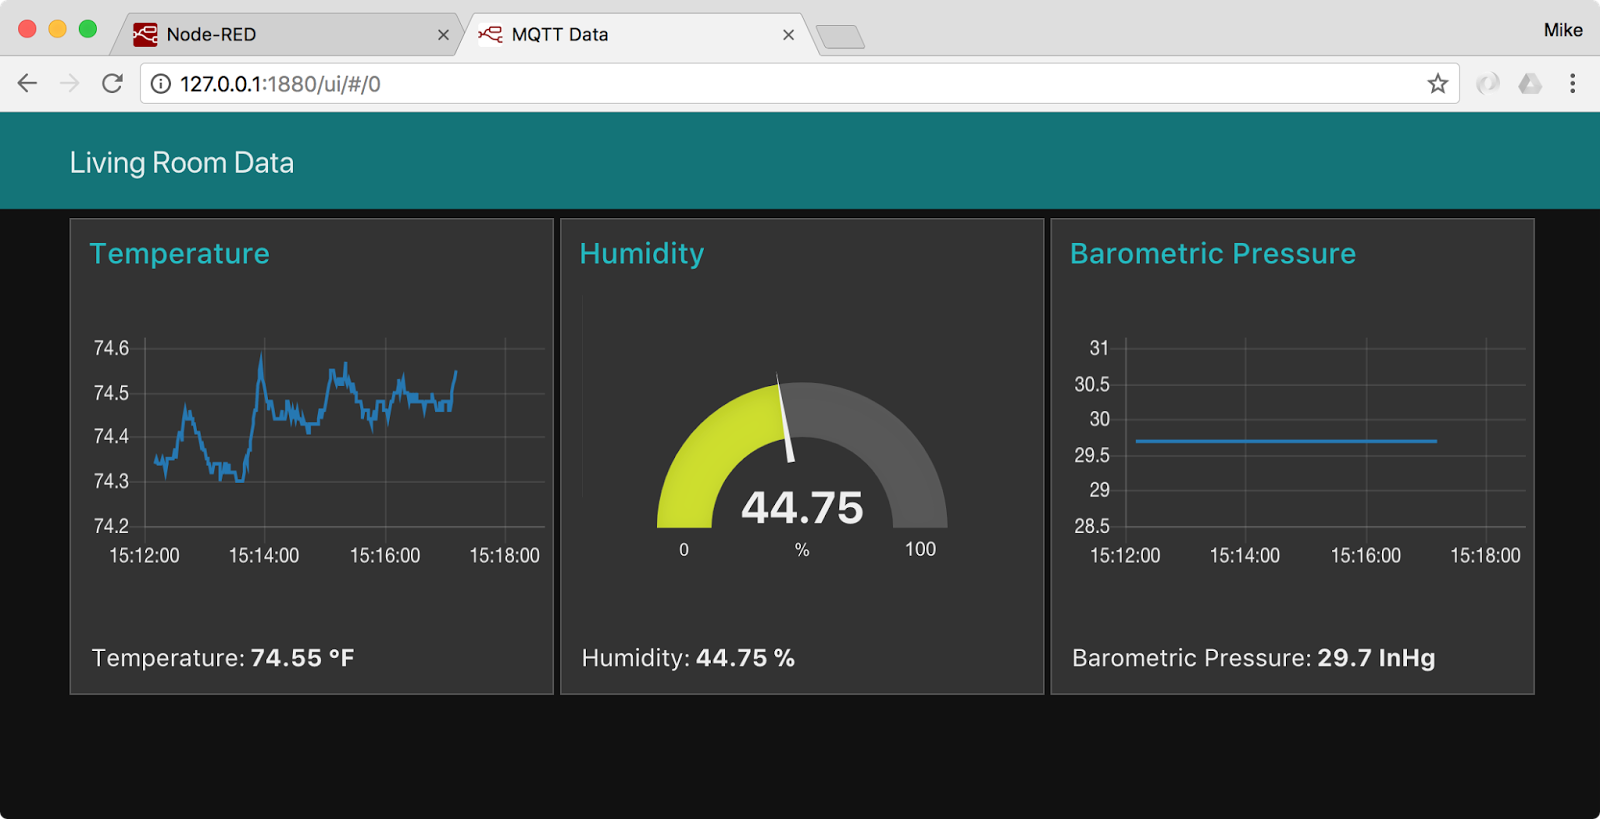 Patriot Geek: Node-RED: Displaying MQTT Data in a Dashboard